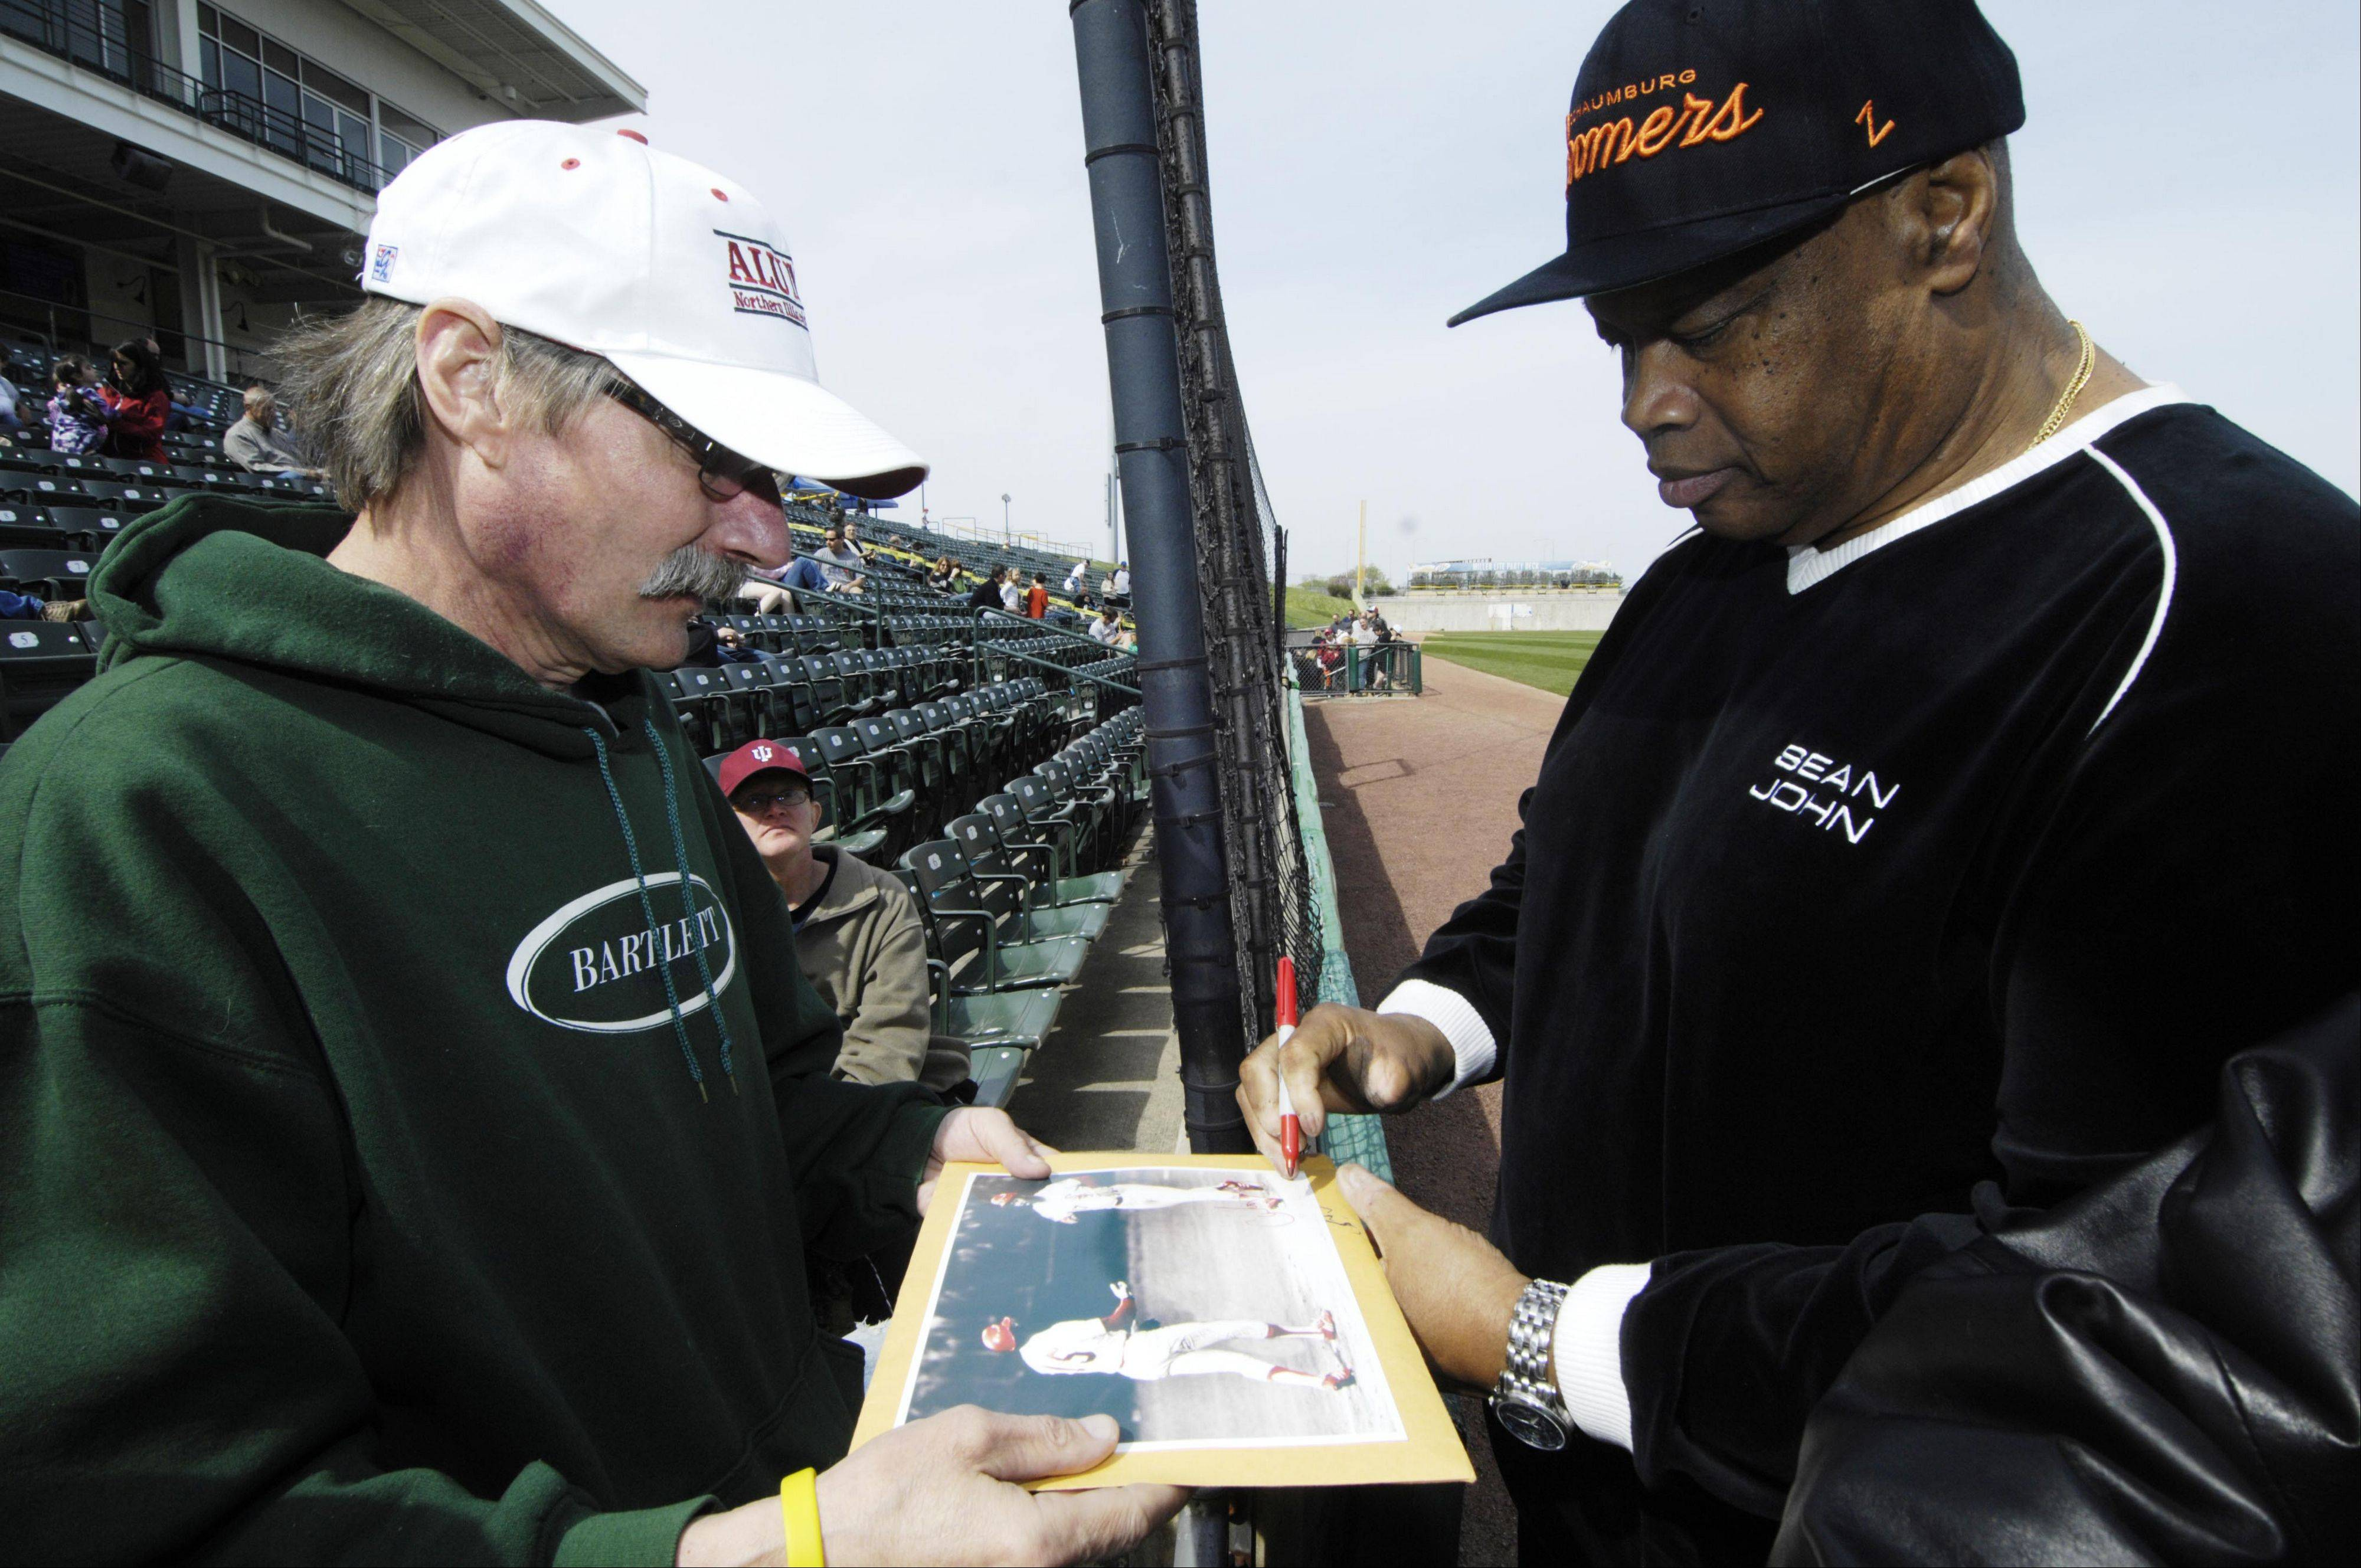 Following his introduction as a Boomers coach, Carlos May signs a photo of himself from his days as a White Sox player for Ken Skelnik, left, of Bartlett, during the Schaumburg Boomers baseball team open house Saturday.